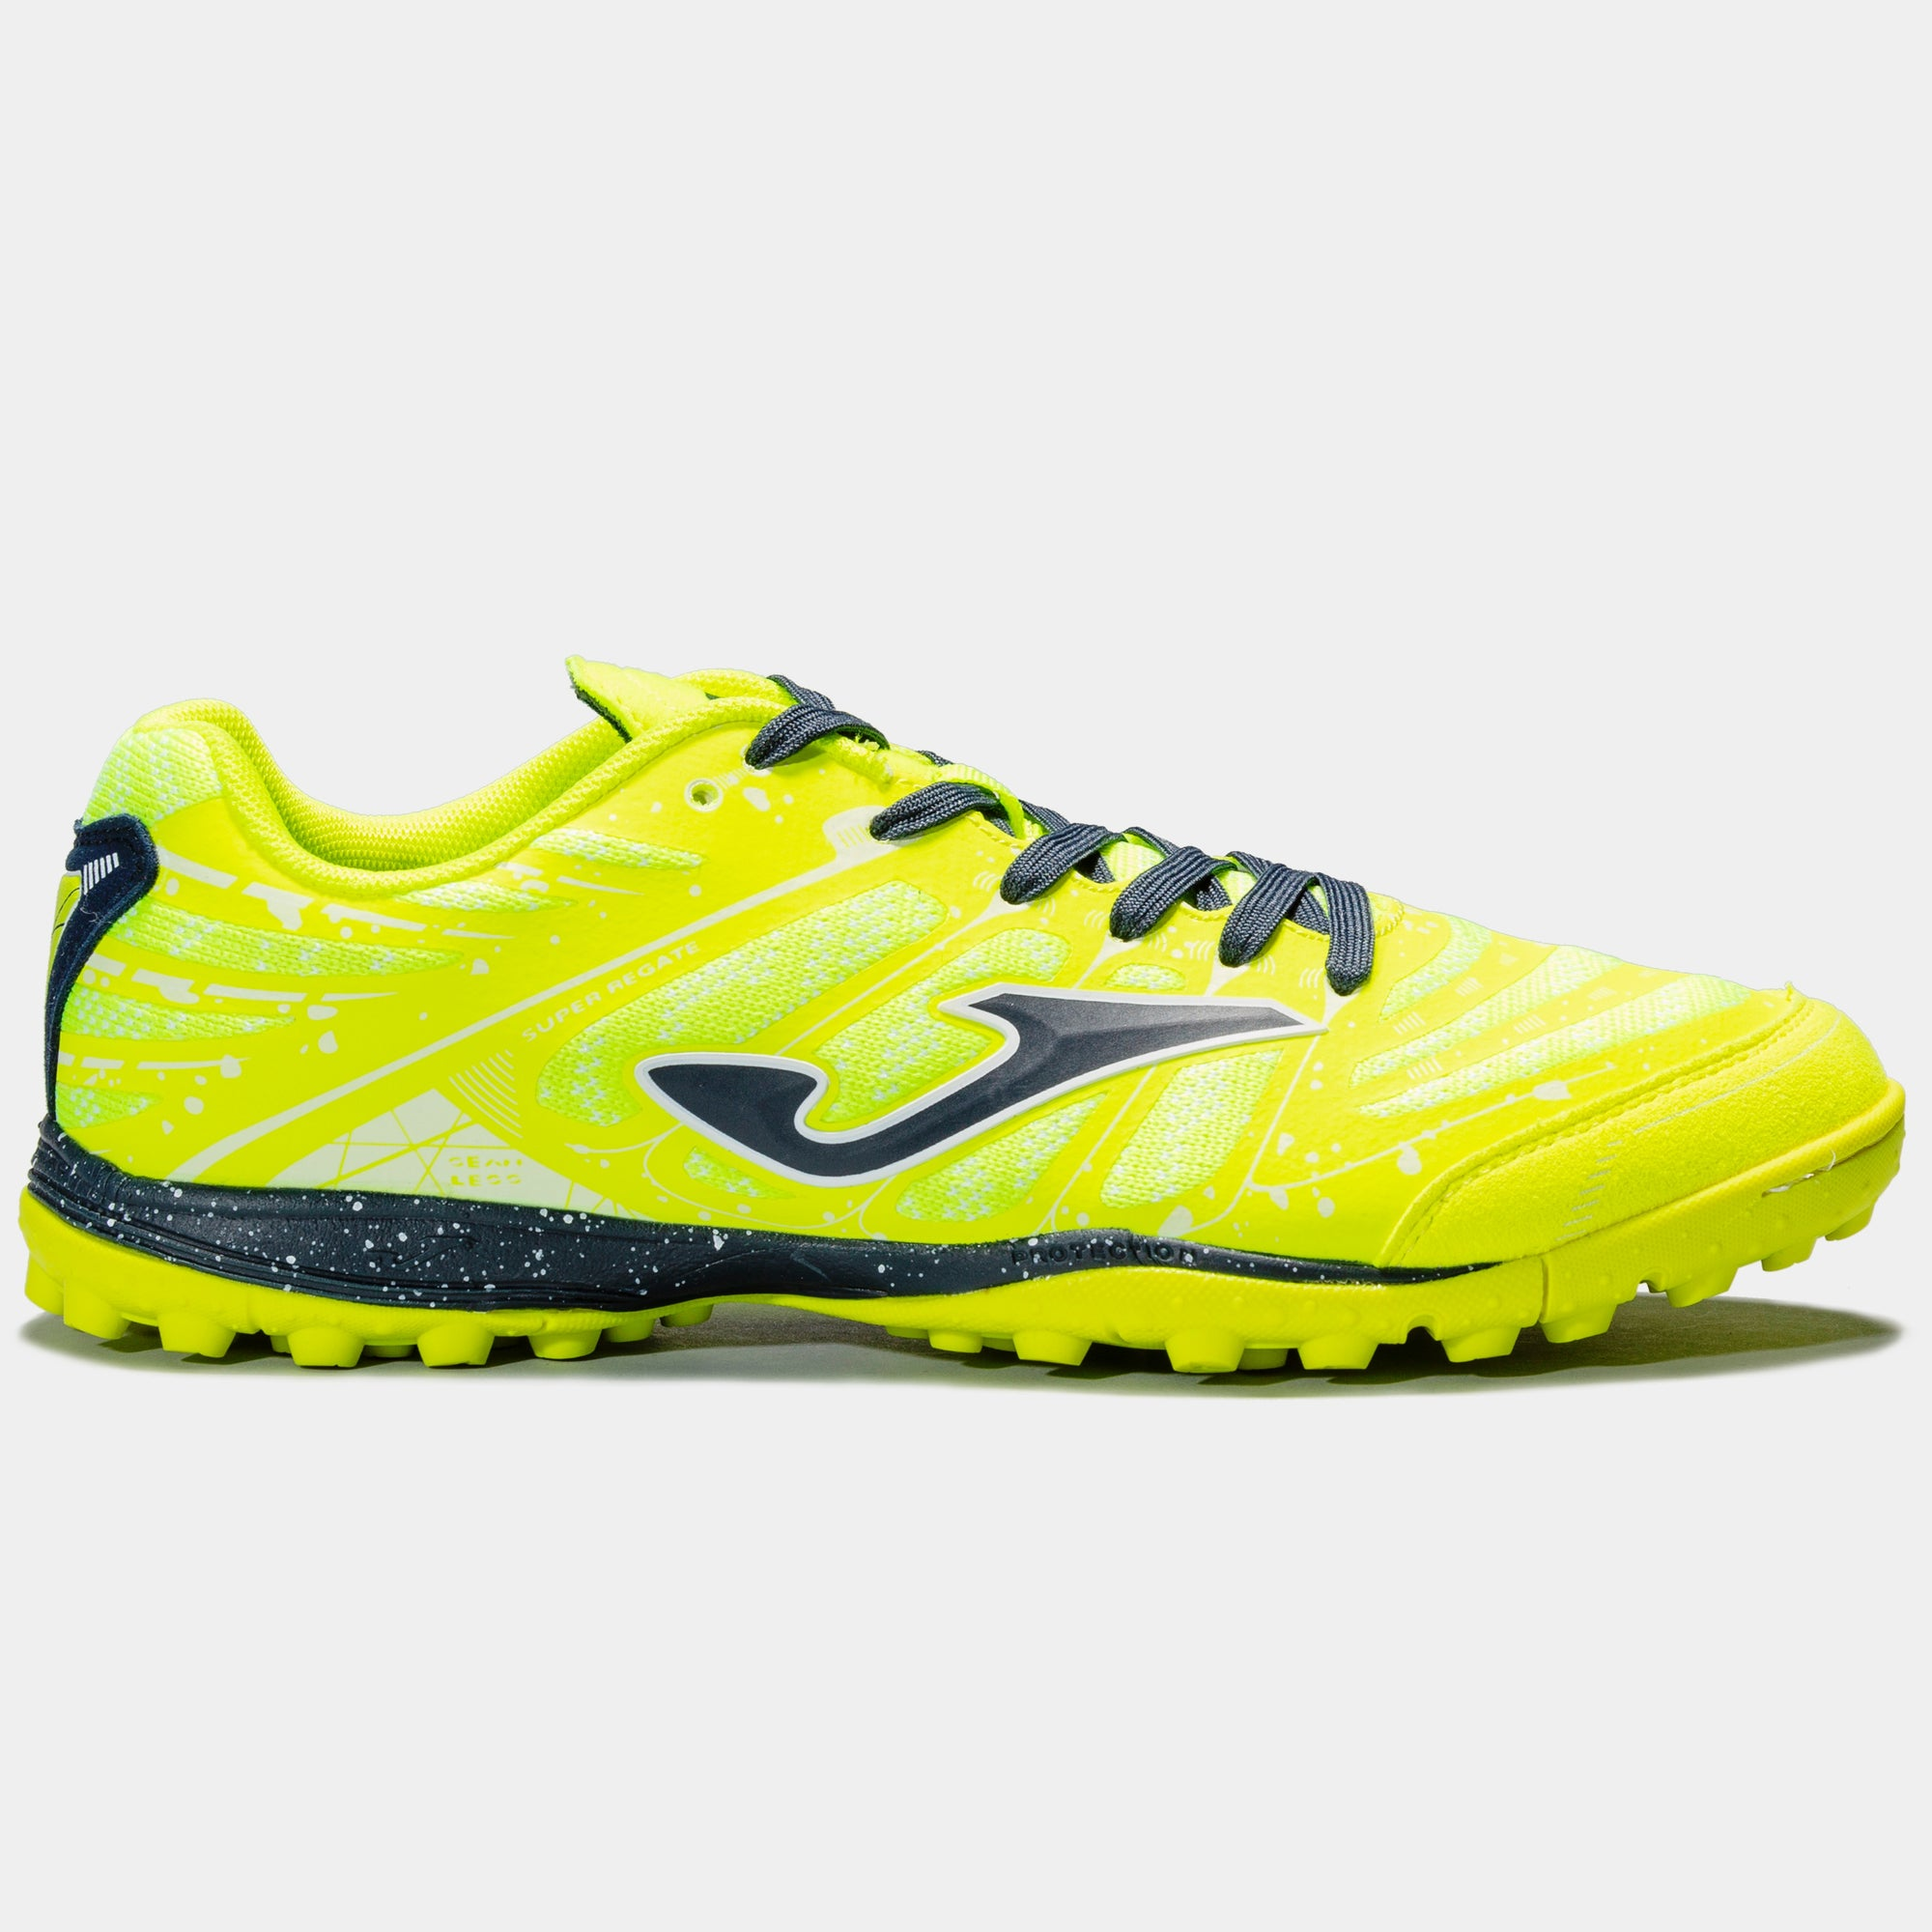 SUPER REGATE 911 FLUOR TURF